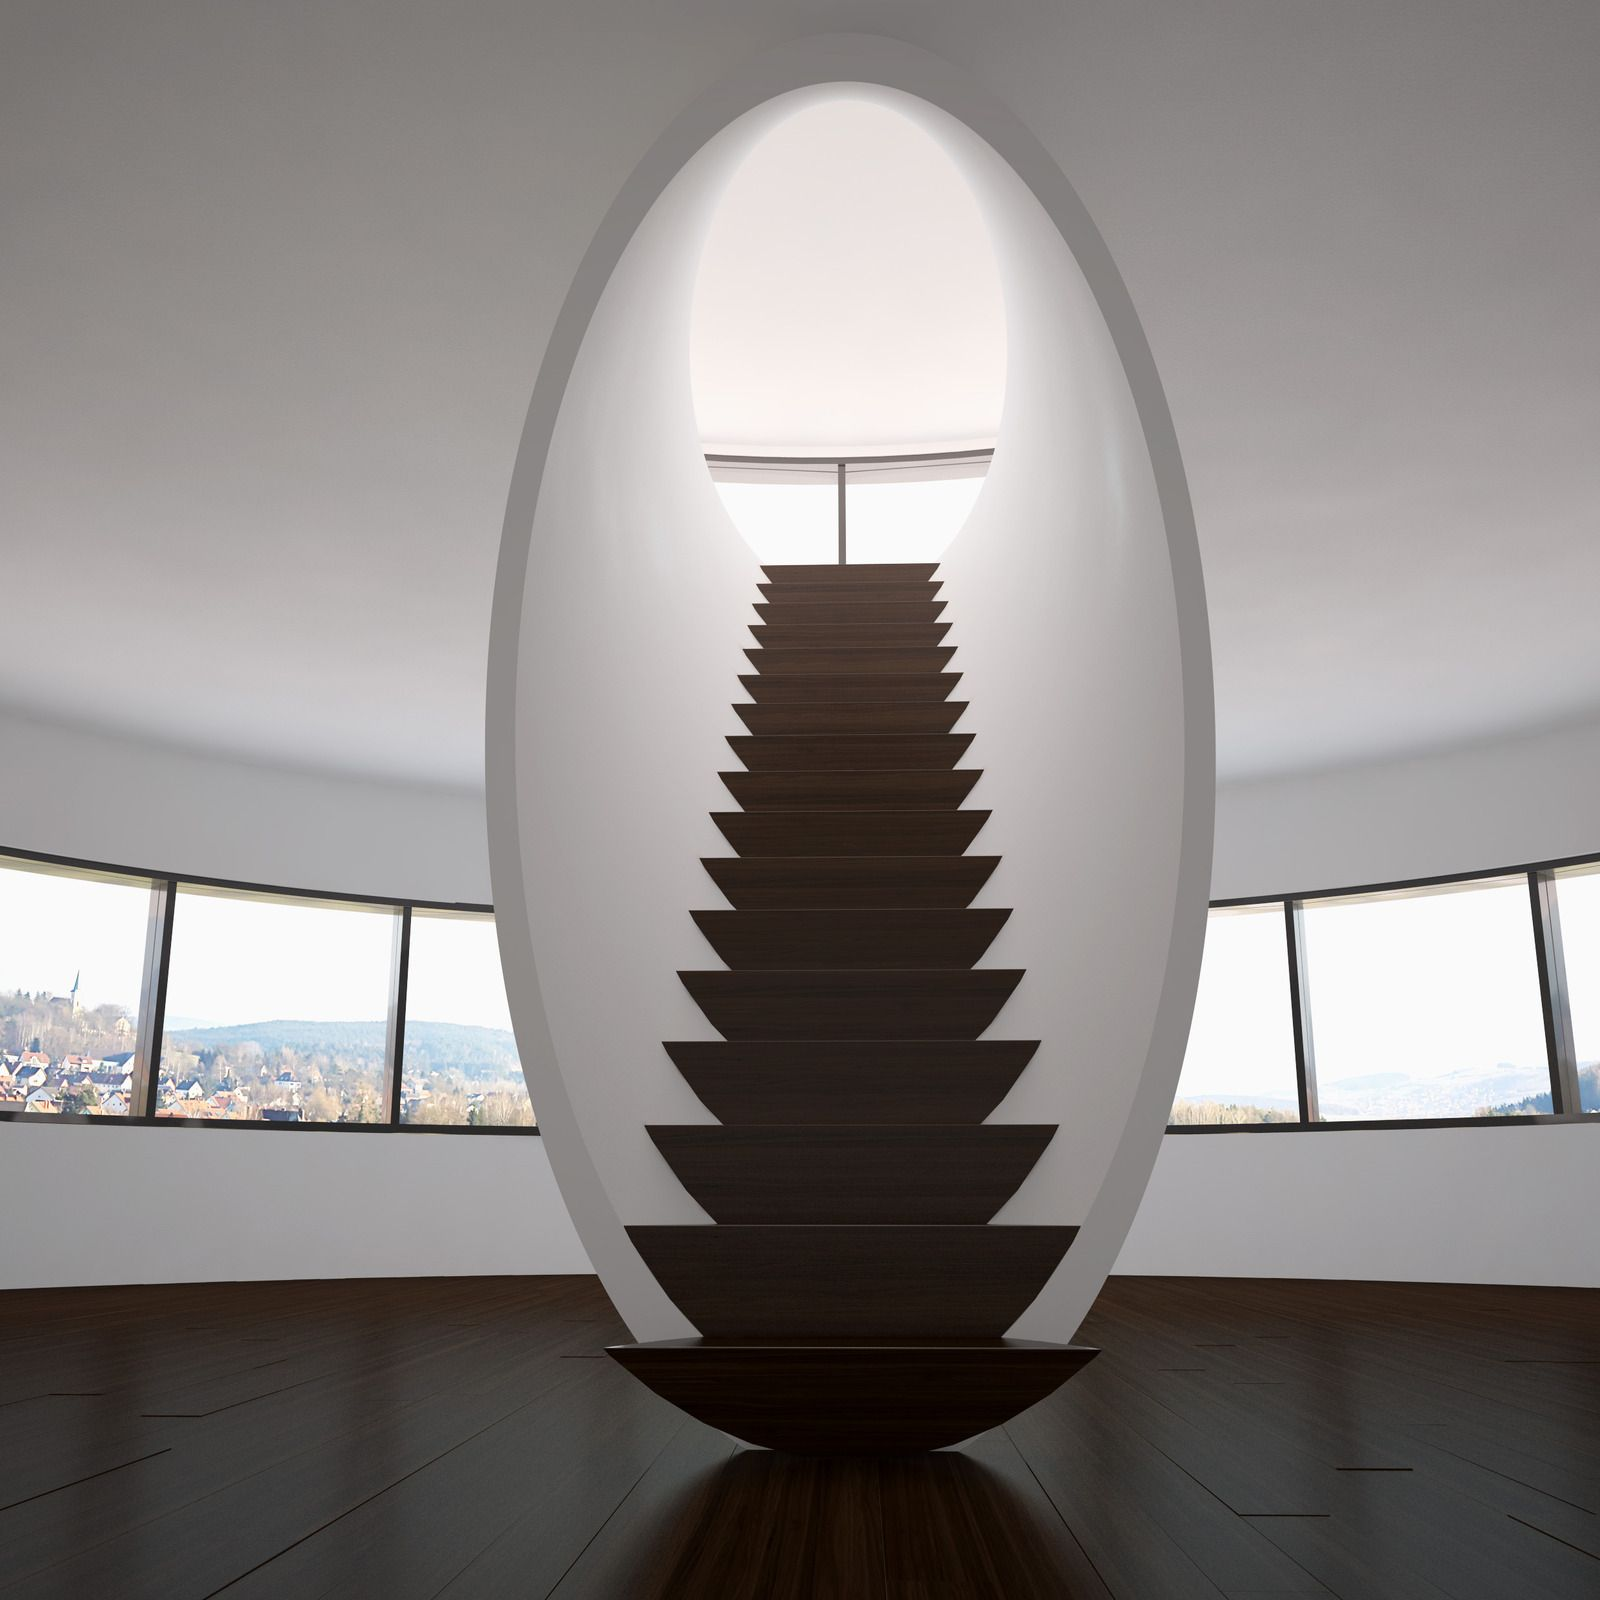 Home treppen design-ideen unique and creative staircase designs for modern homes  treppe